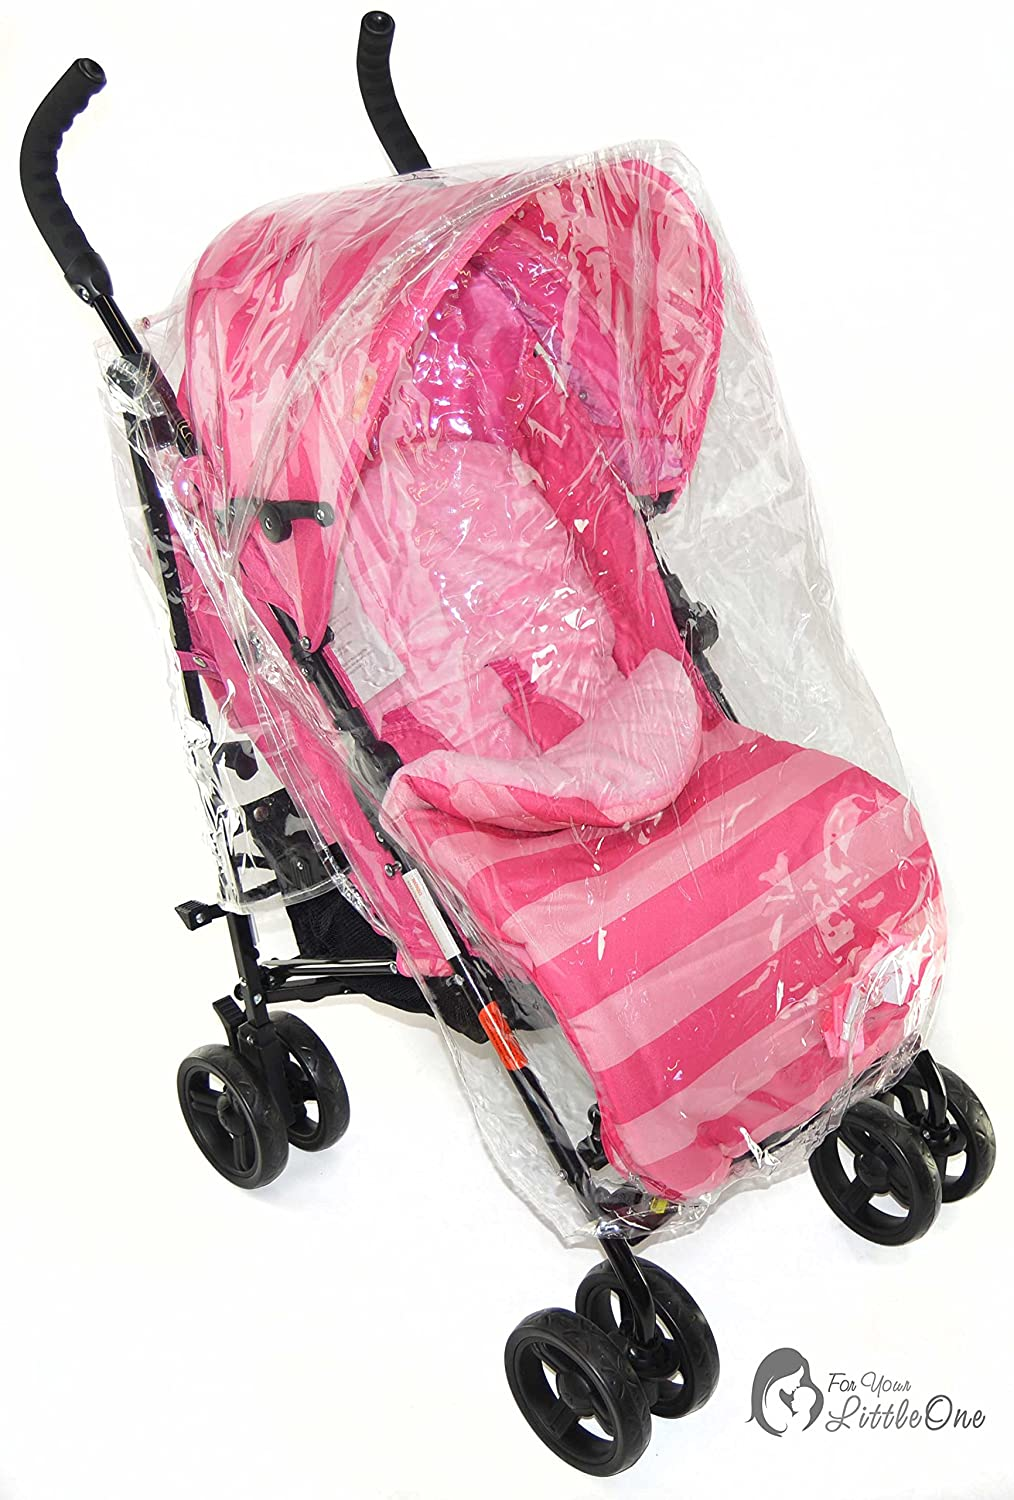 Protector de lluvia Compatible con bebe confort? Mila For-Your-Little-One